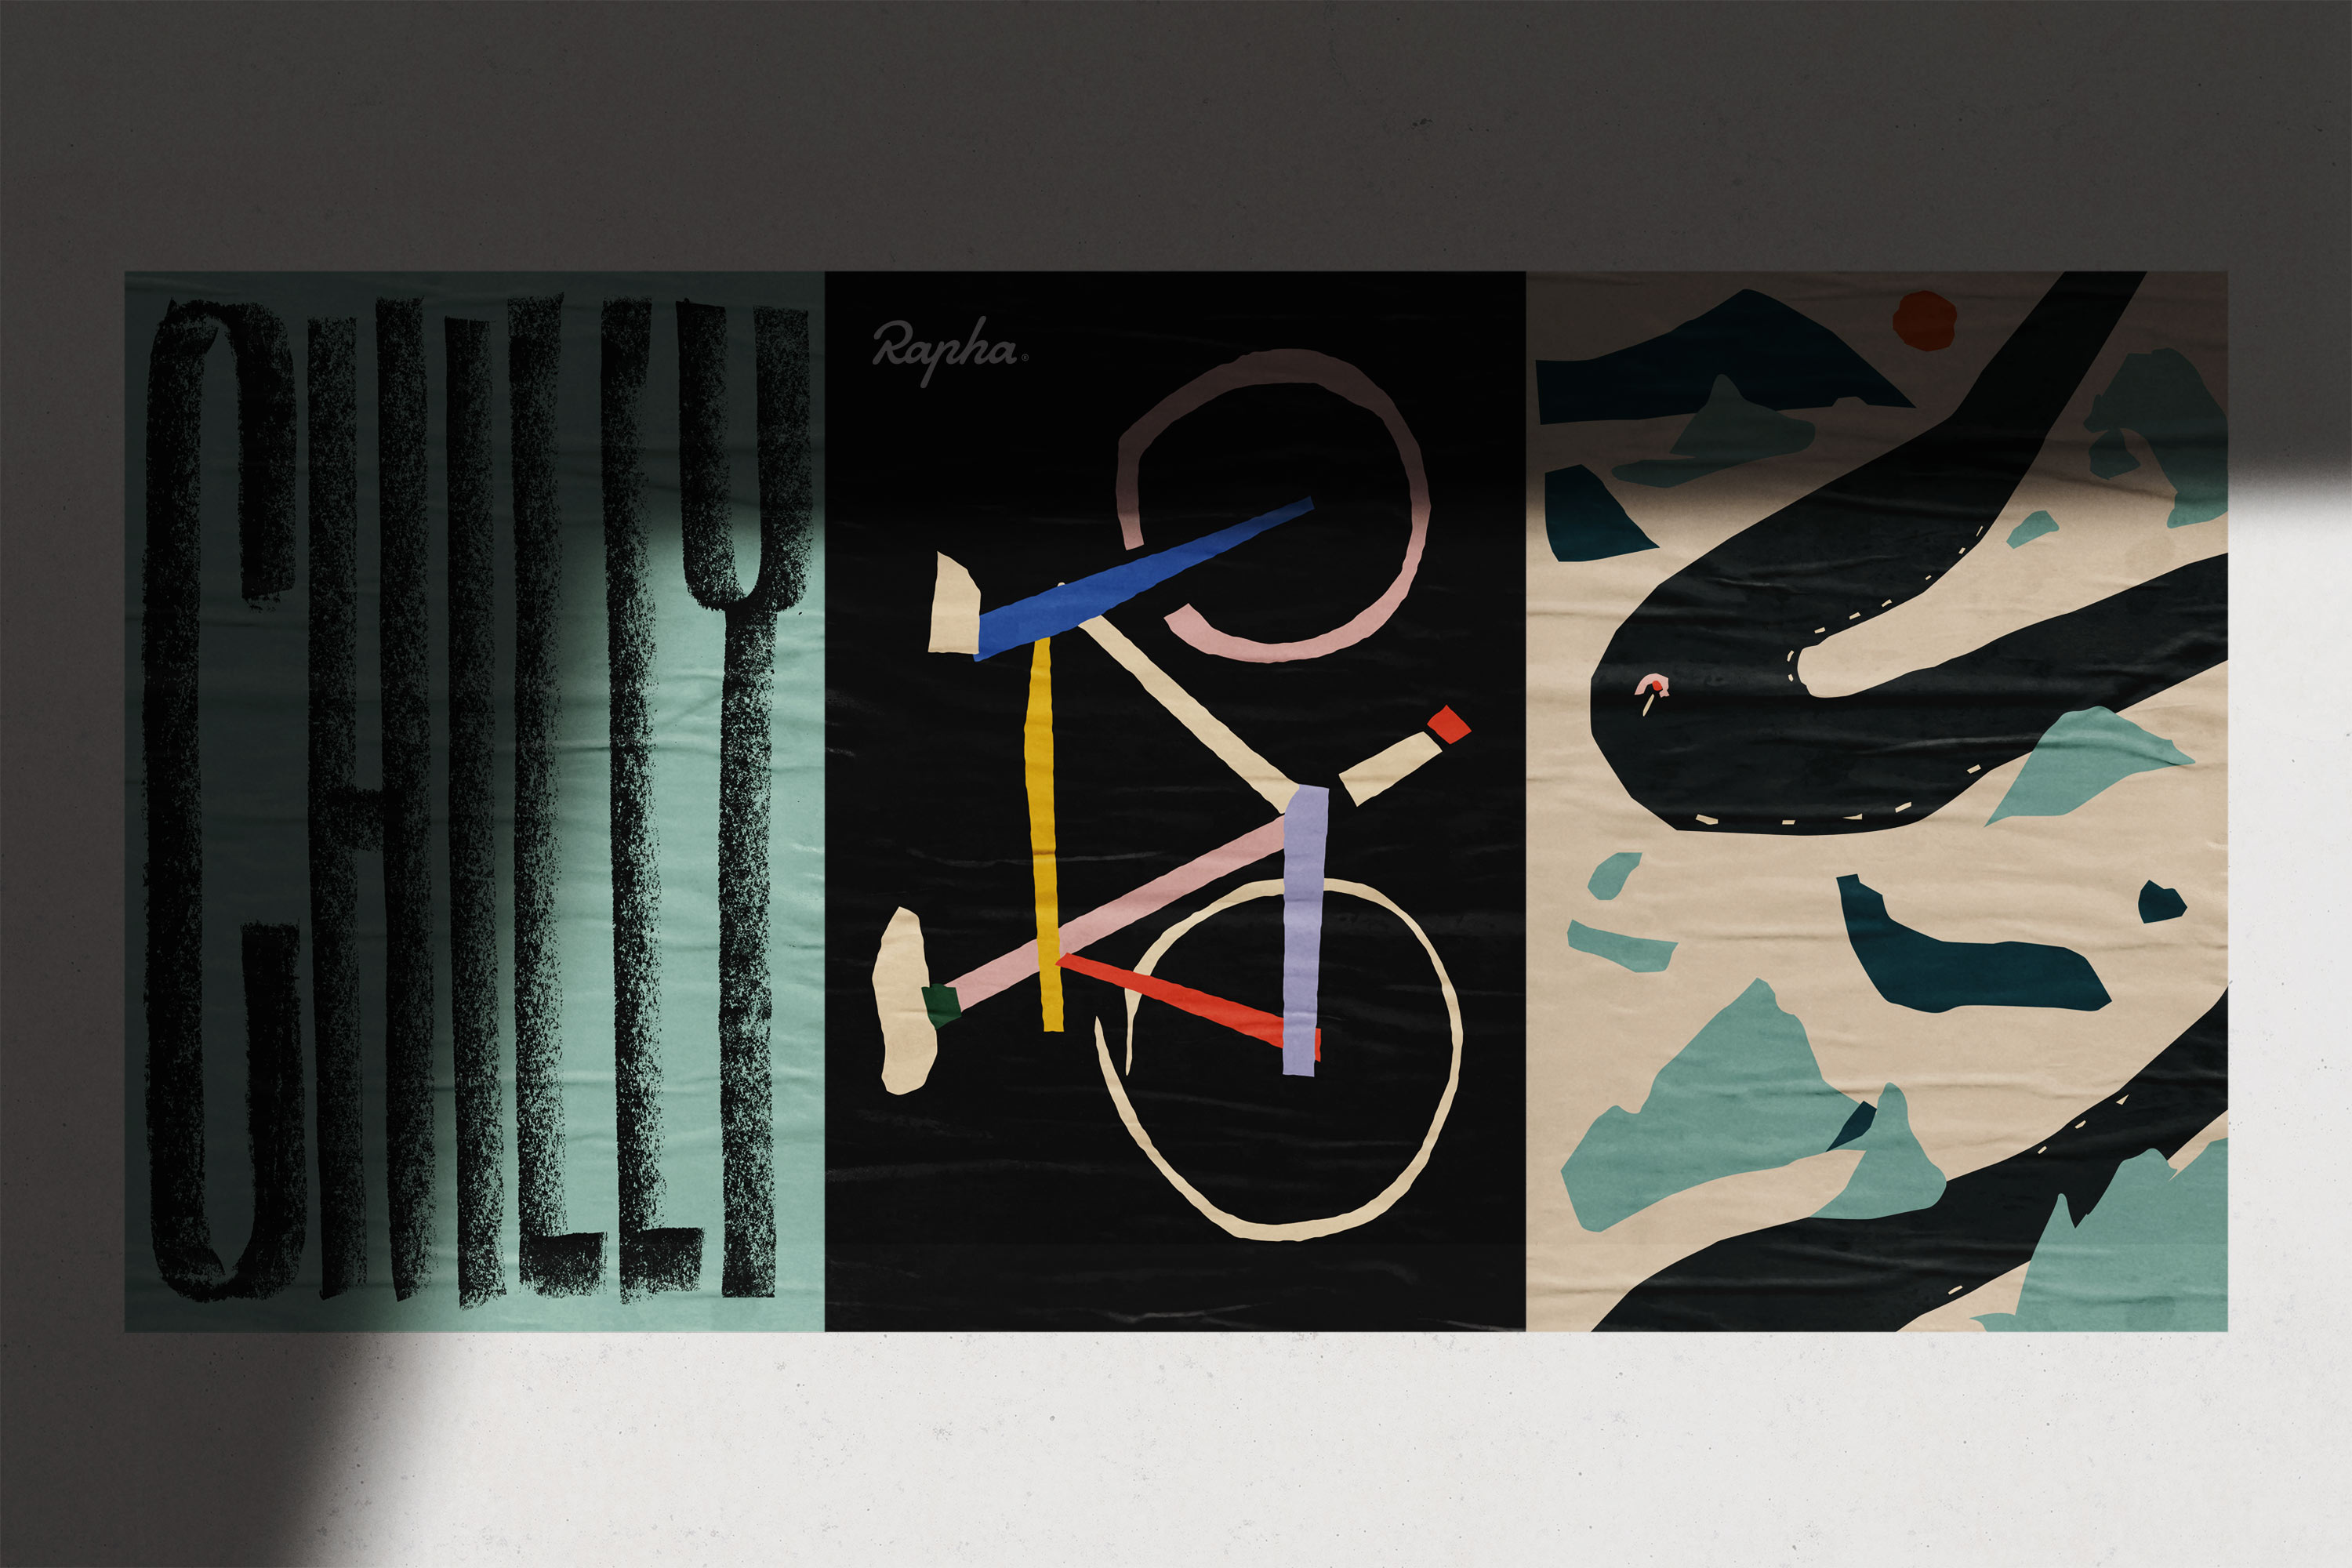 siotes-rapha-jersey-design-collaboration-chris-ballasiotes-seattle-tacoma-branding-3